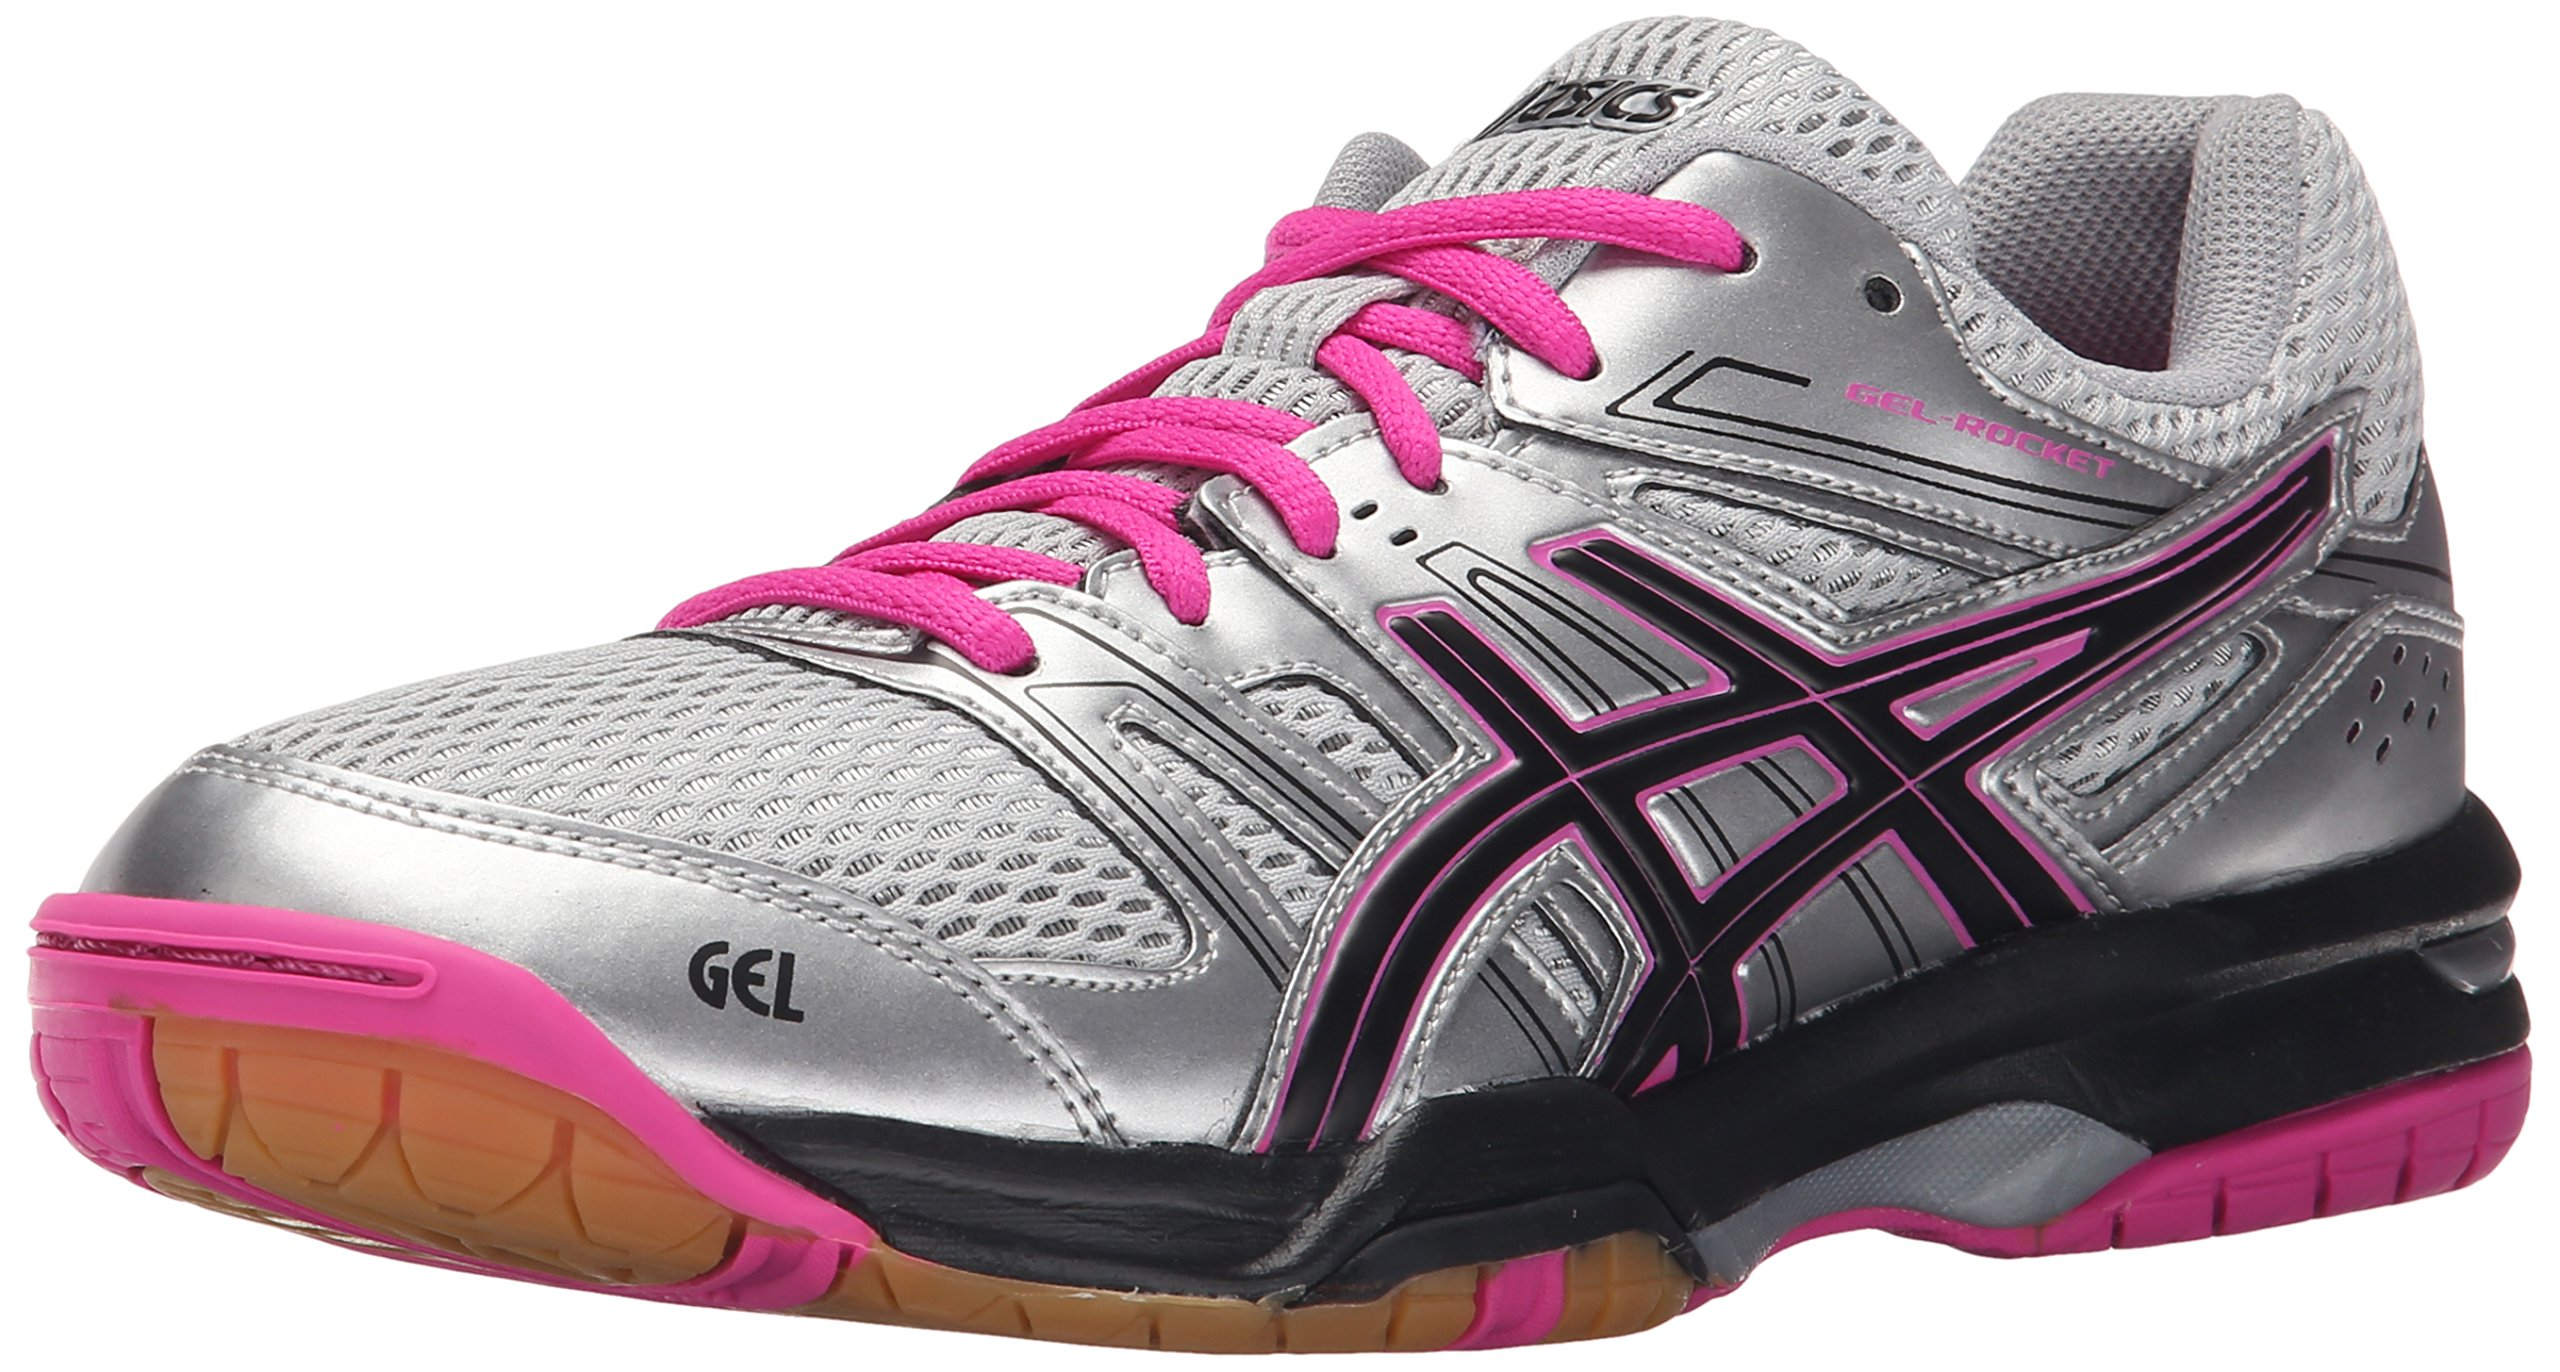 ASICS Women's Gel Rocket 7 Indoor Court Shoe, Silver/Black/Pink Glow, 13 M US